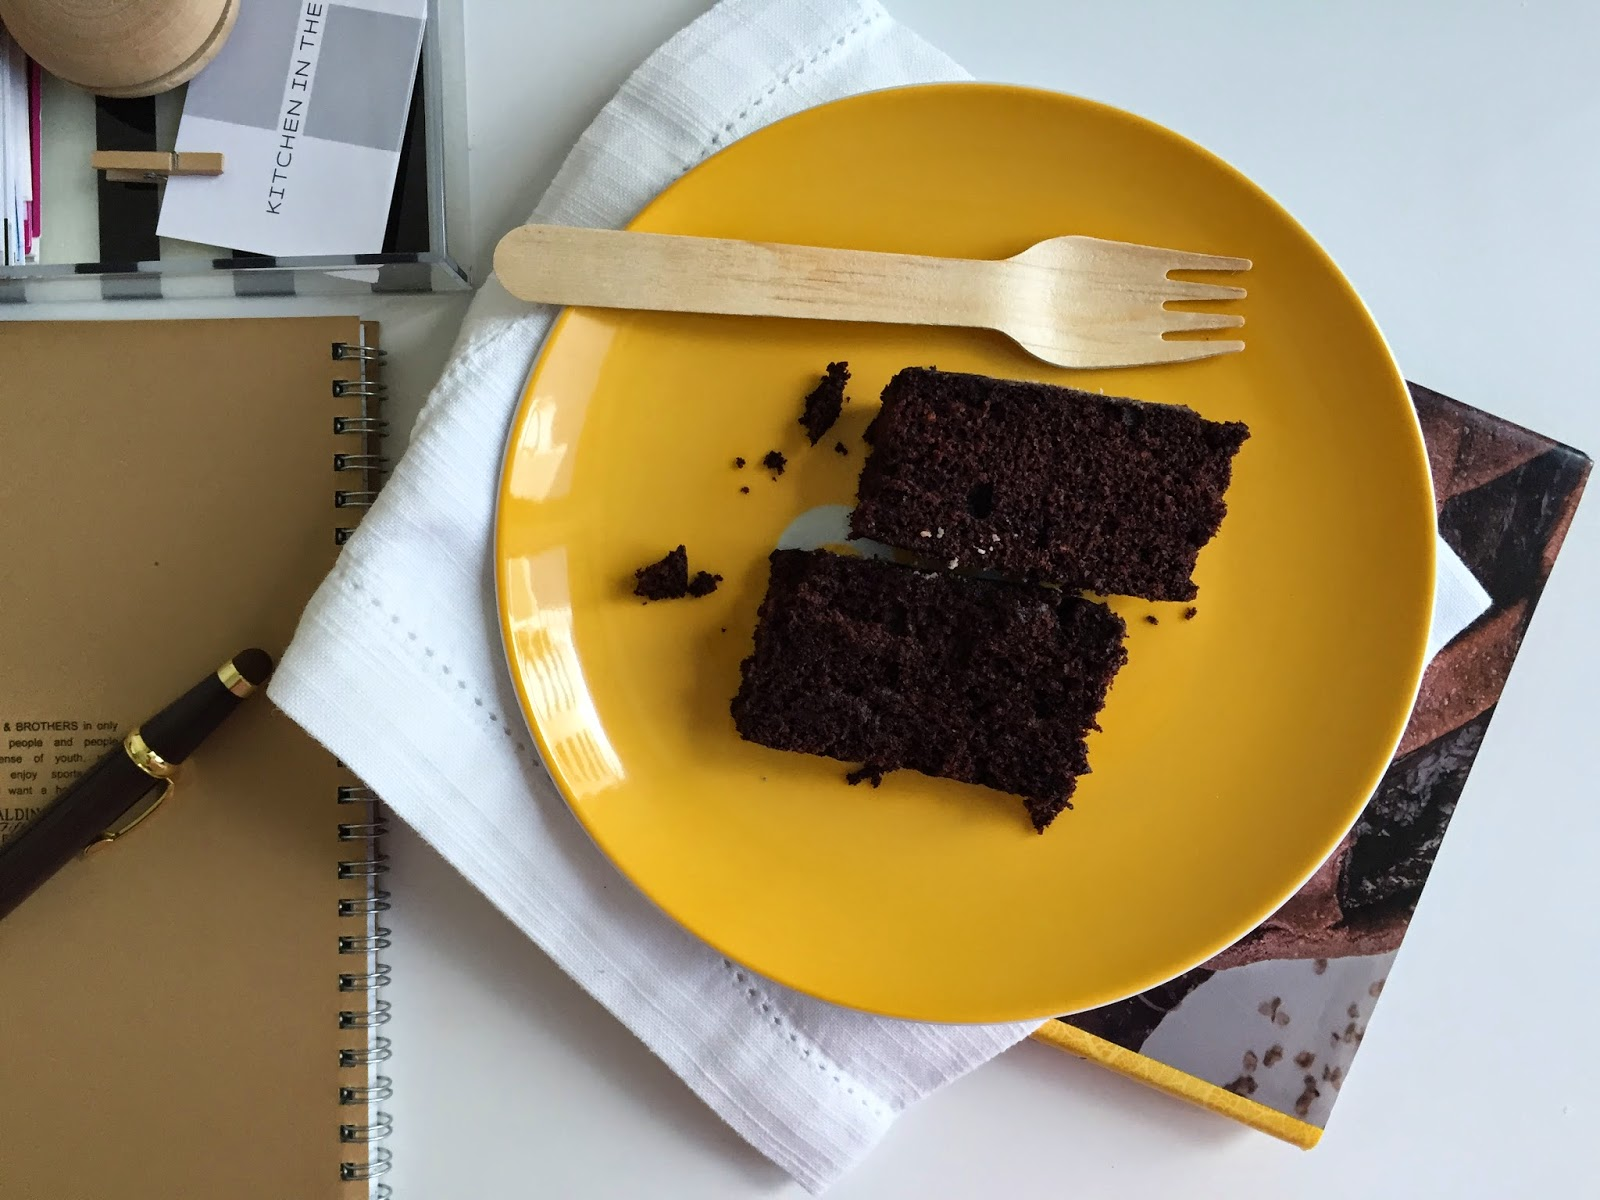 Super healthy chocolate cake aka wacky cake (no eggs, butter, milk and ... chocolate)